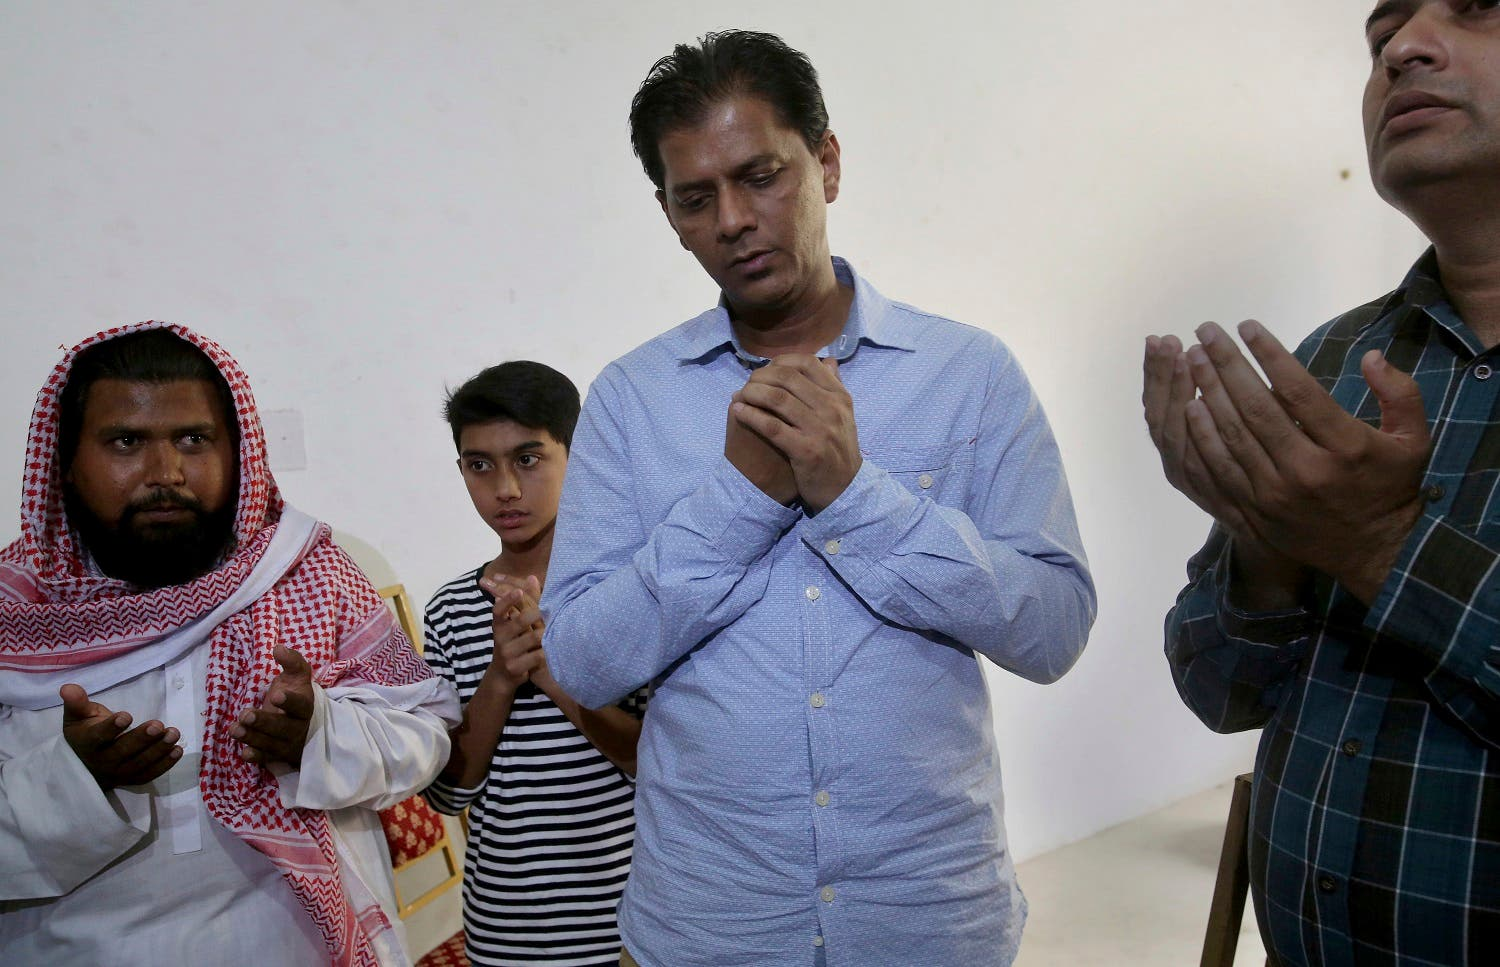 Abdul Aziz Sheikh, center, father of Sabika Sheikh, a victim of a shooting at a Texas high school, prays with other relatives at his home in Karachi. (AP)